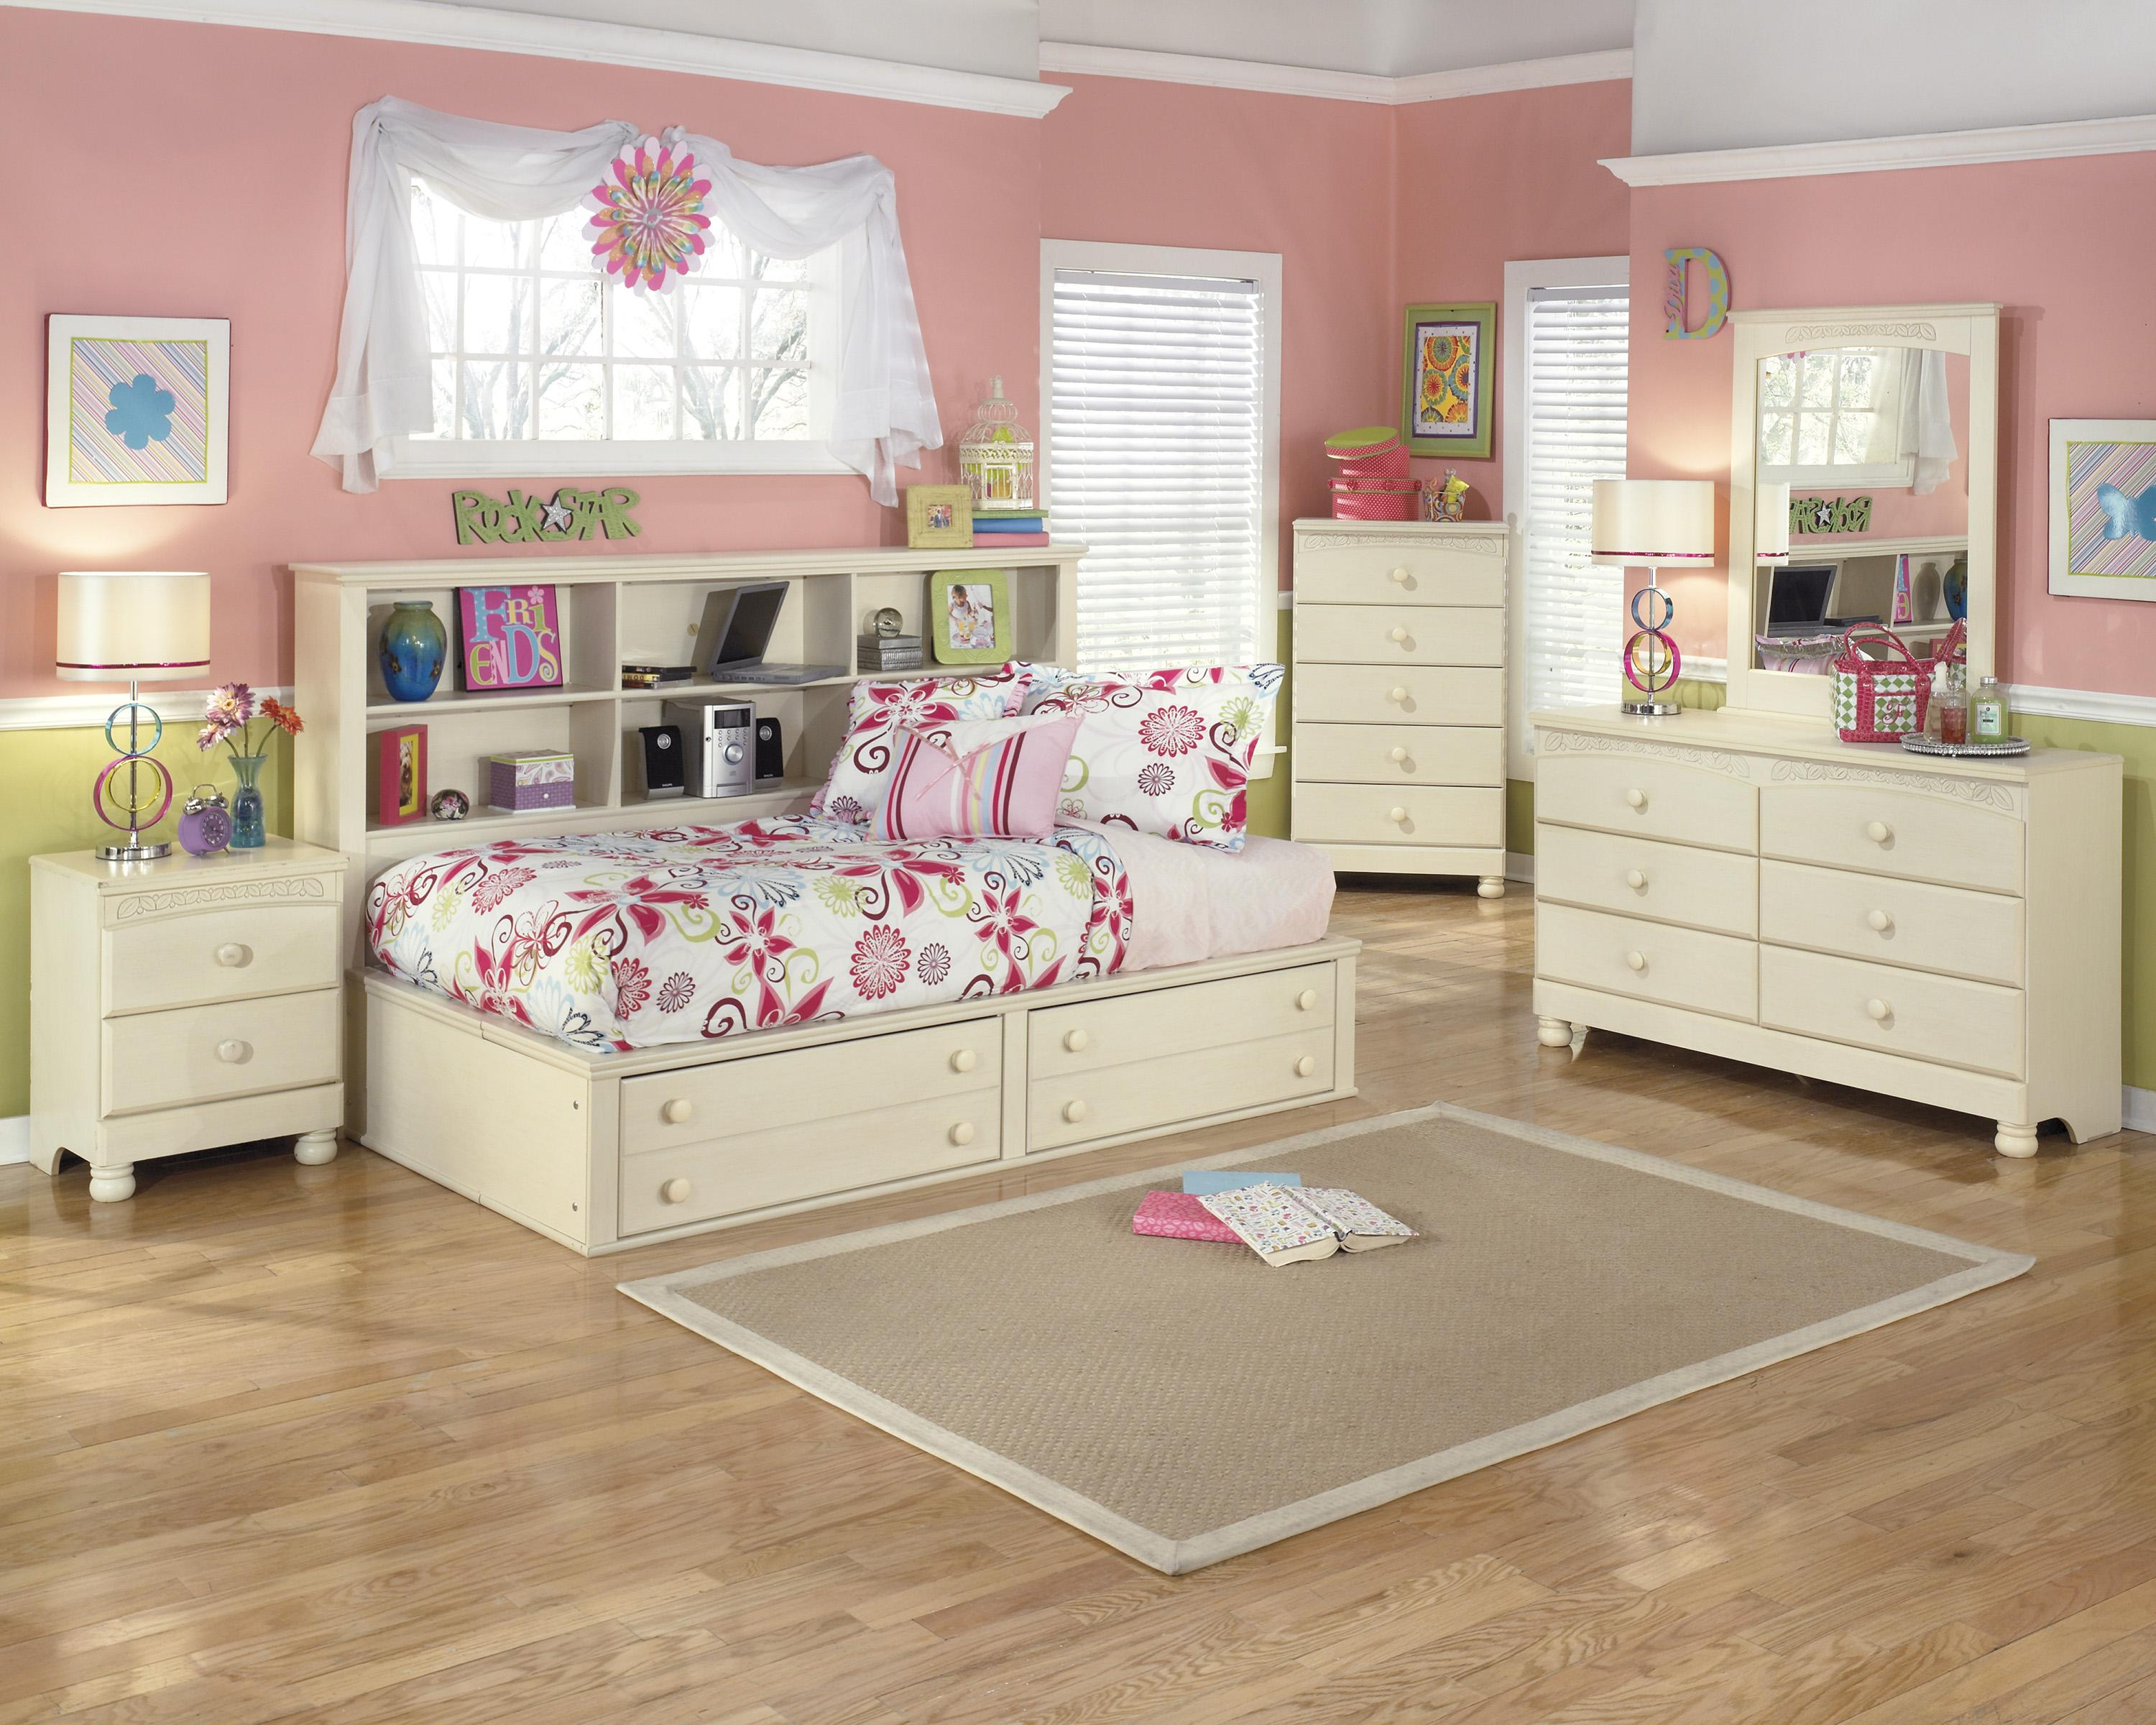 Signature Design by Ashley Cottage Retreat Twin Bedroom Group - Item Number: B213 T Bedroom Group 1